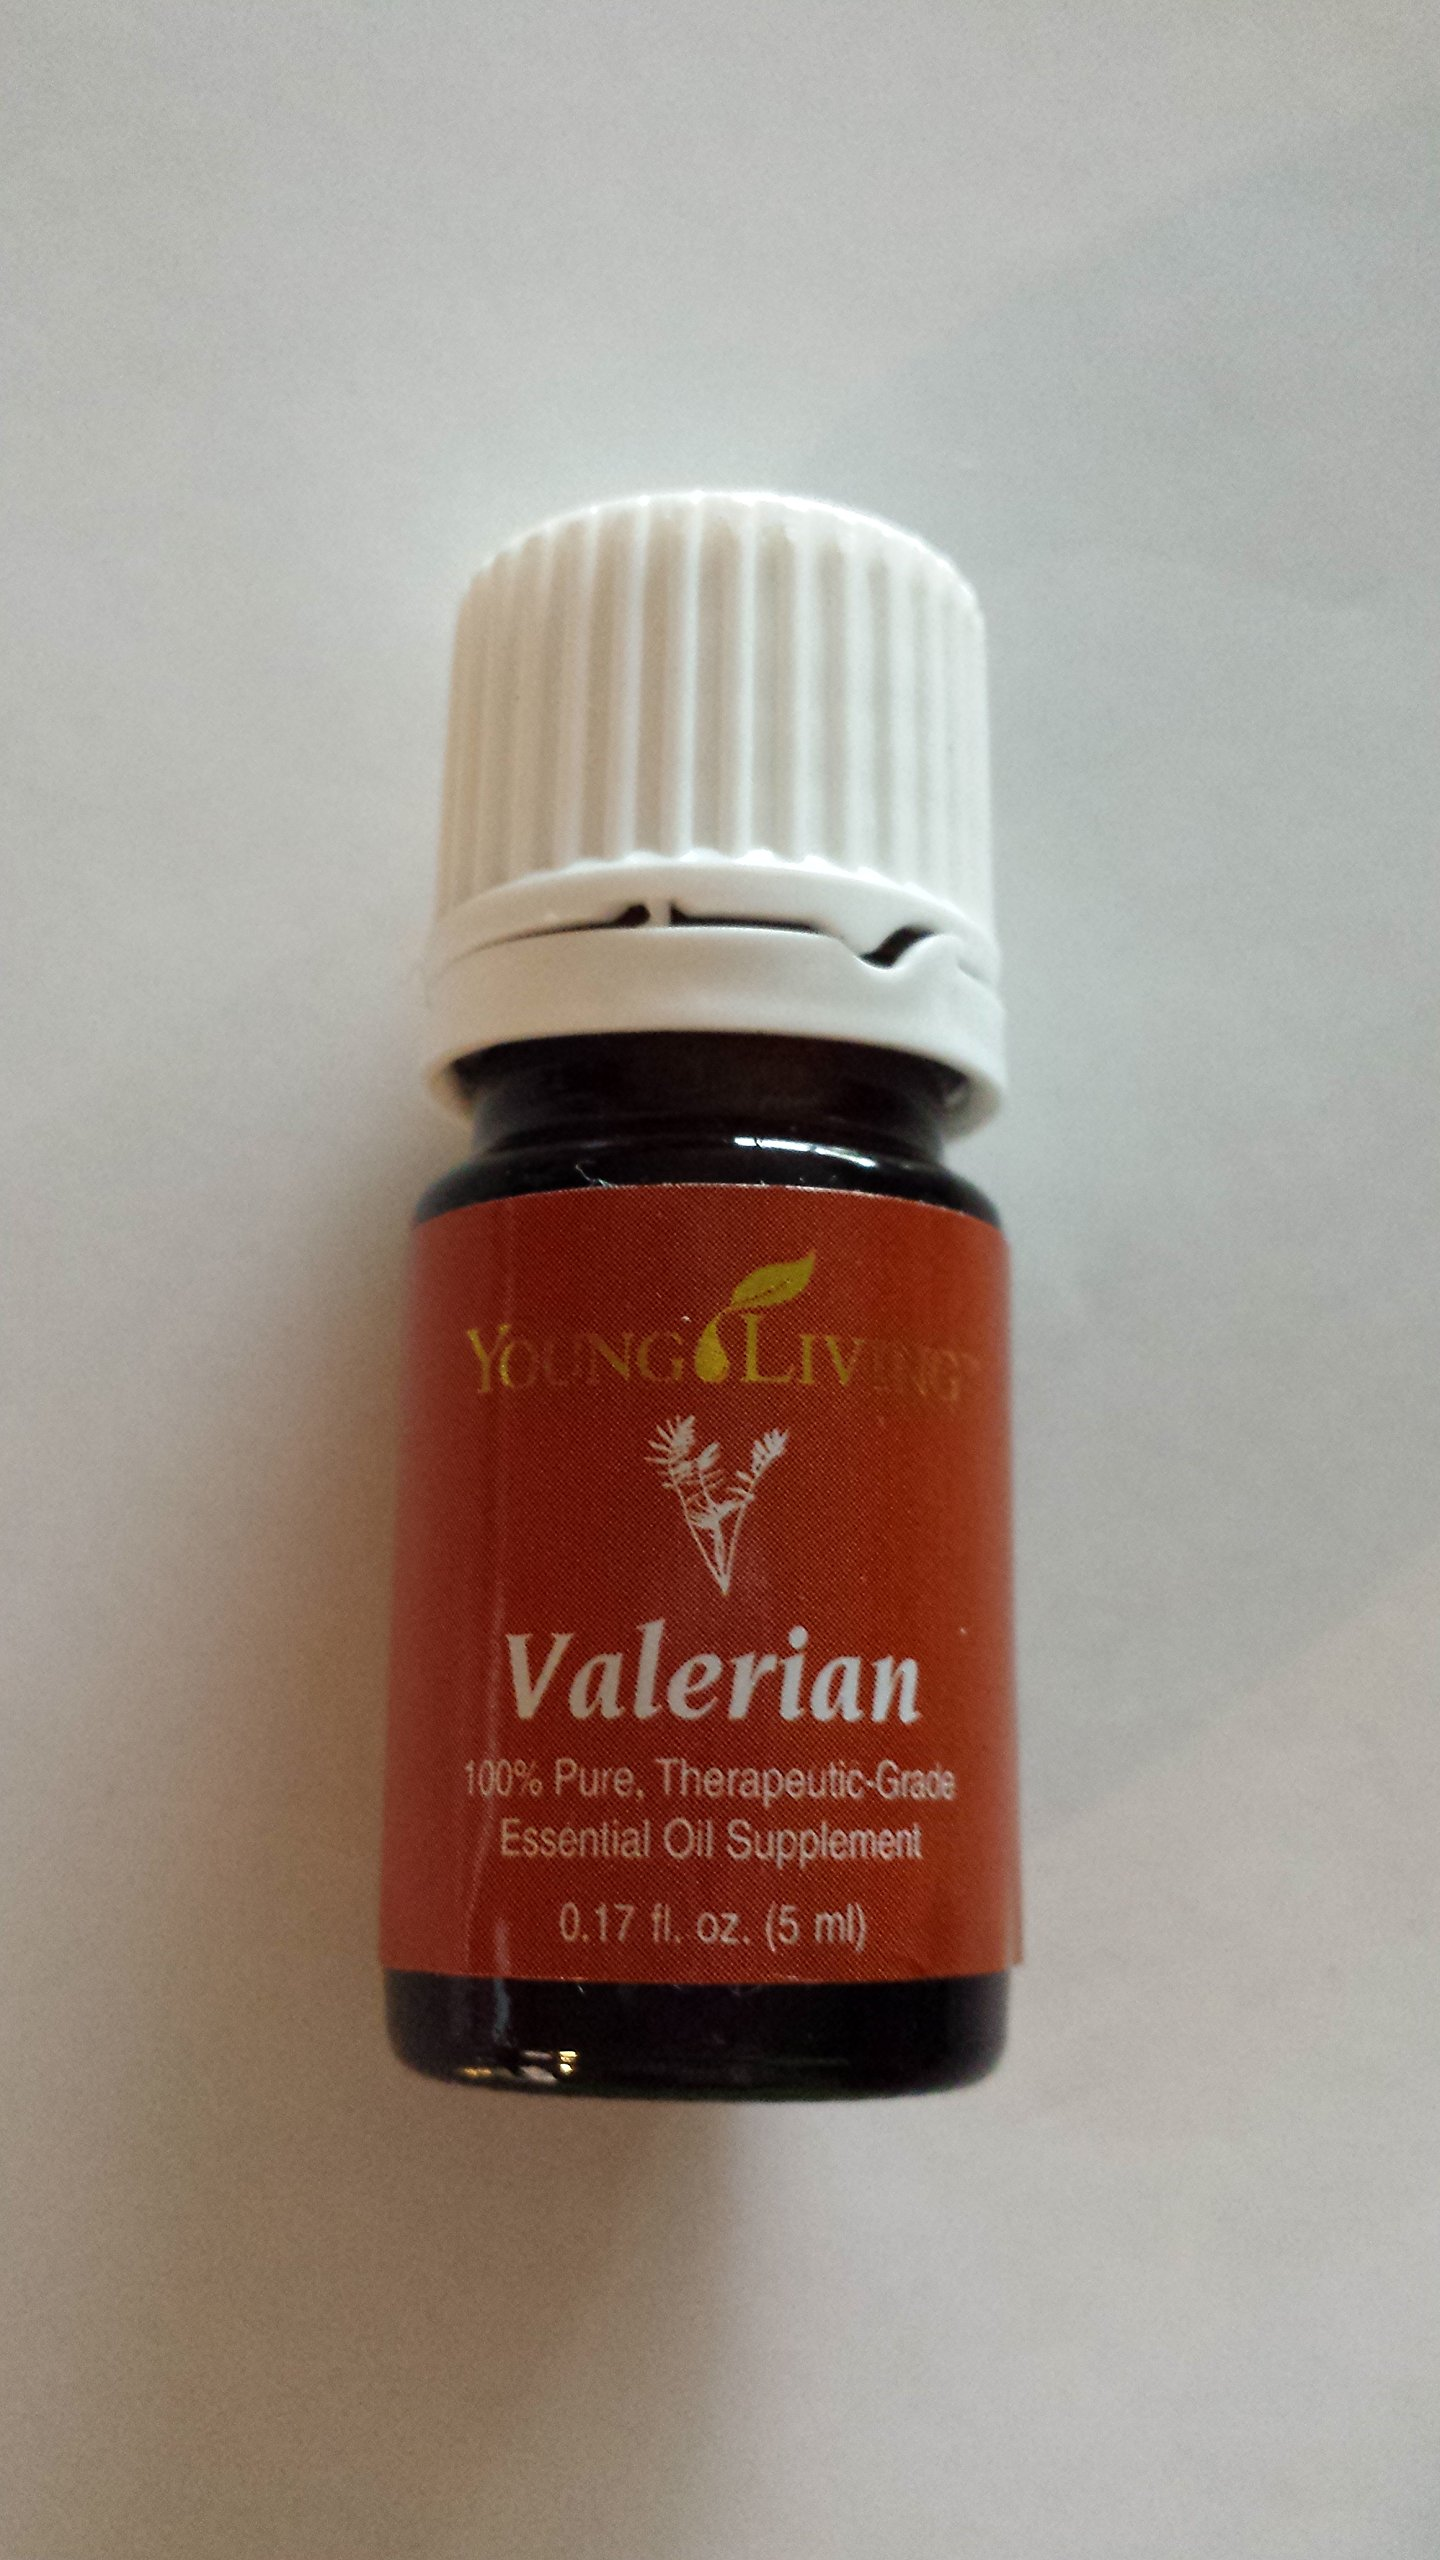 Young Living Essential Oil Valerian 5 Ml by Young Living (Image #1)